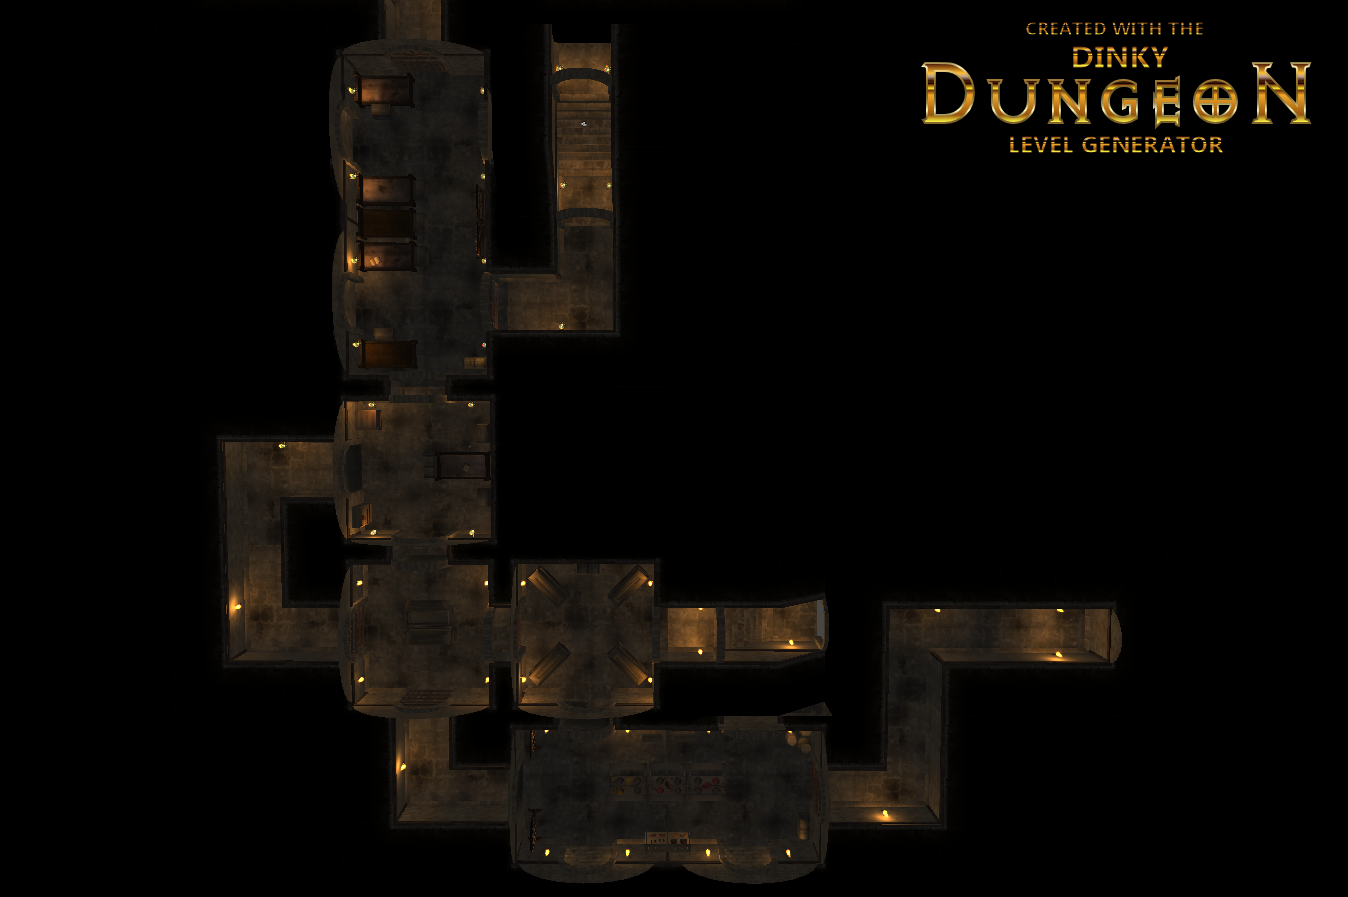 Dinky Dungeon Level Generator RELEASED Unity Community : shot5 png from forum.unity3d.com size 1348 x 897 png 439kB